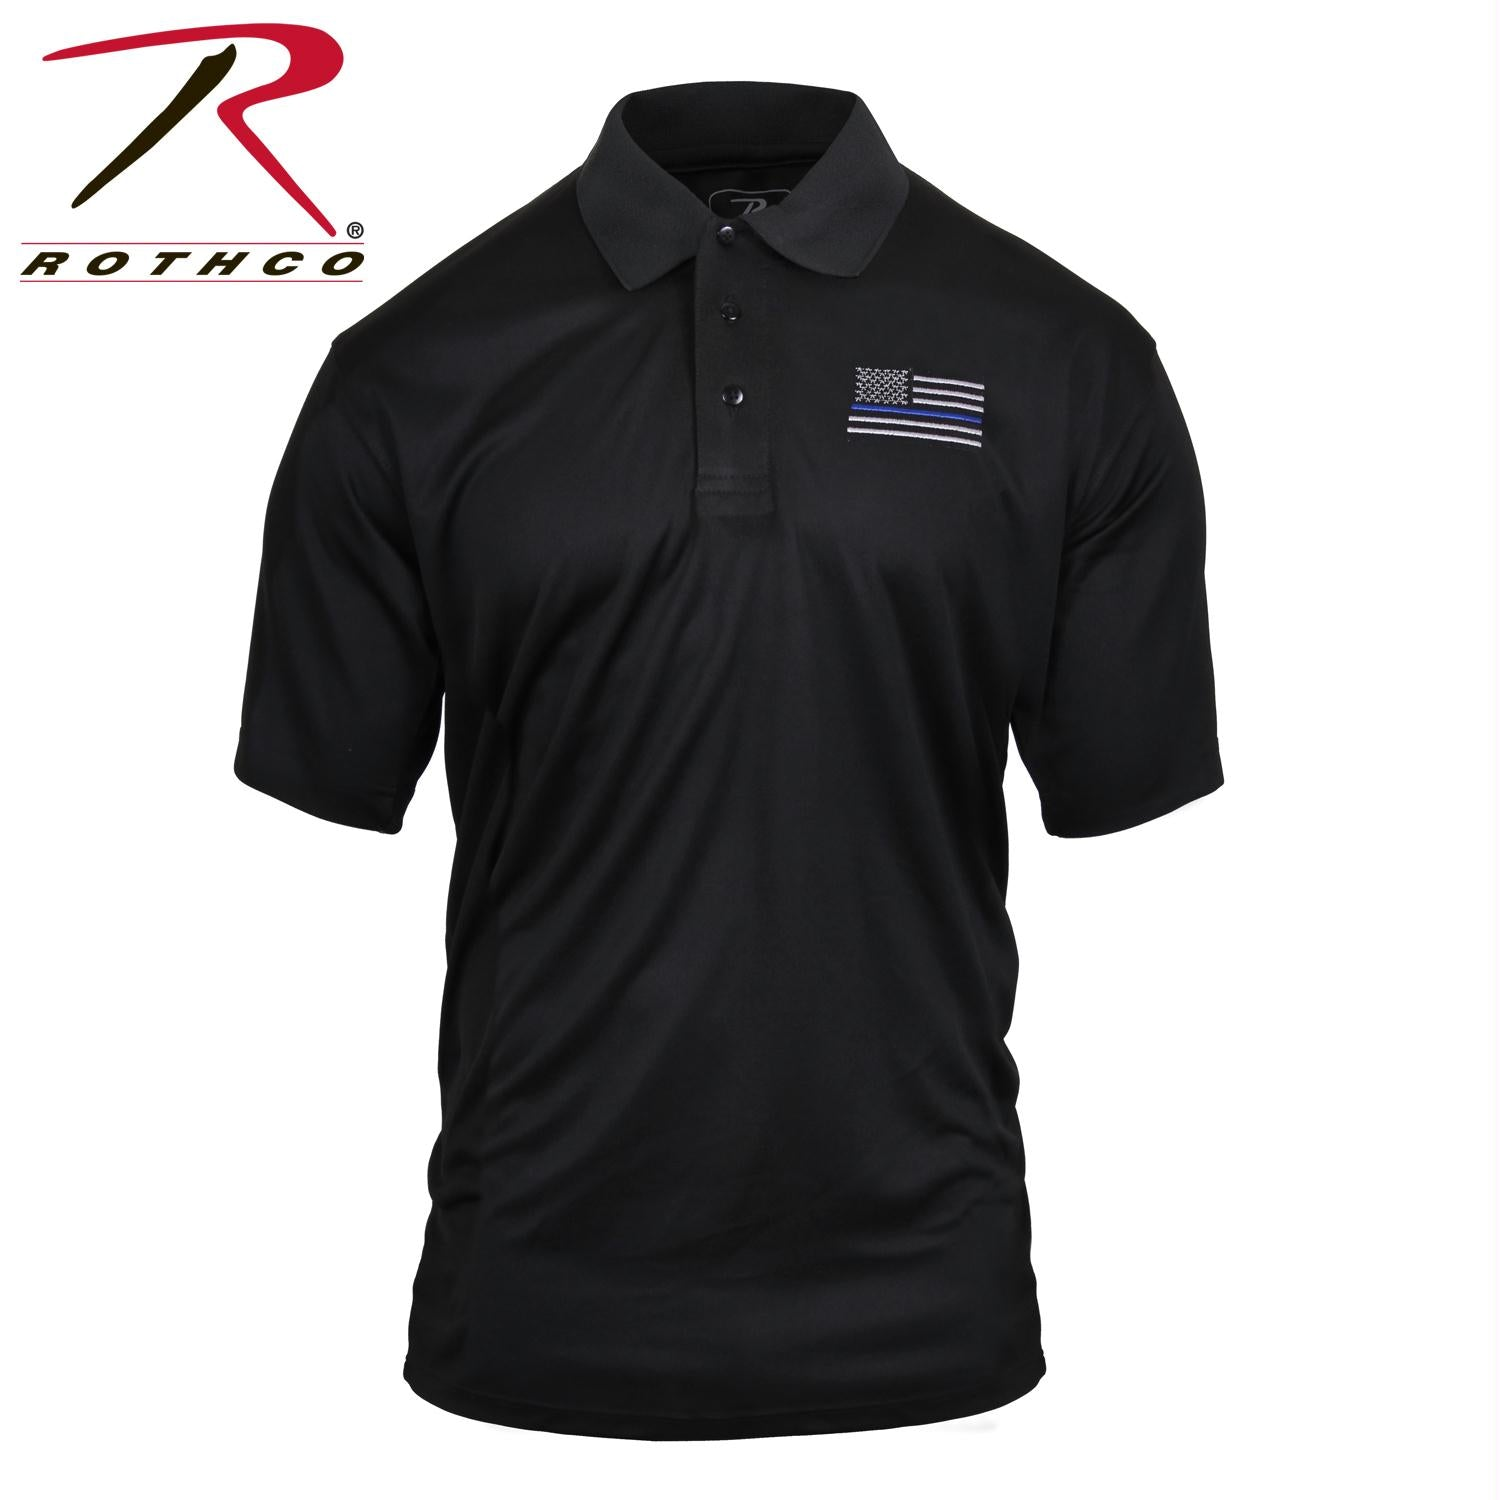 Rothco Thin Blue Line Moisture Wicking Polo - Black / 3XL